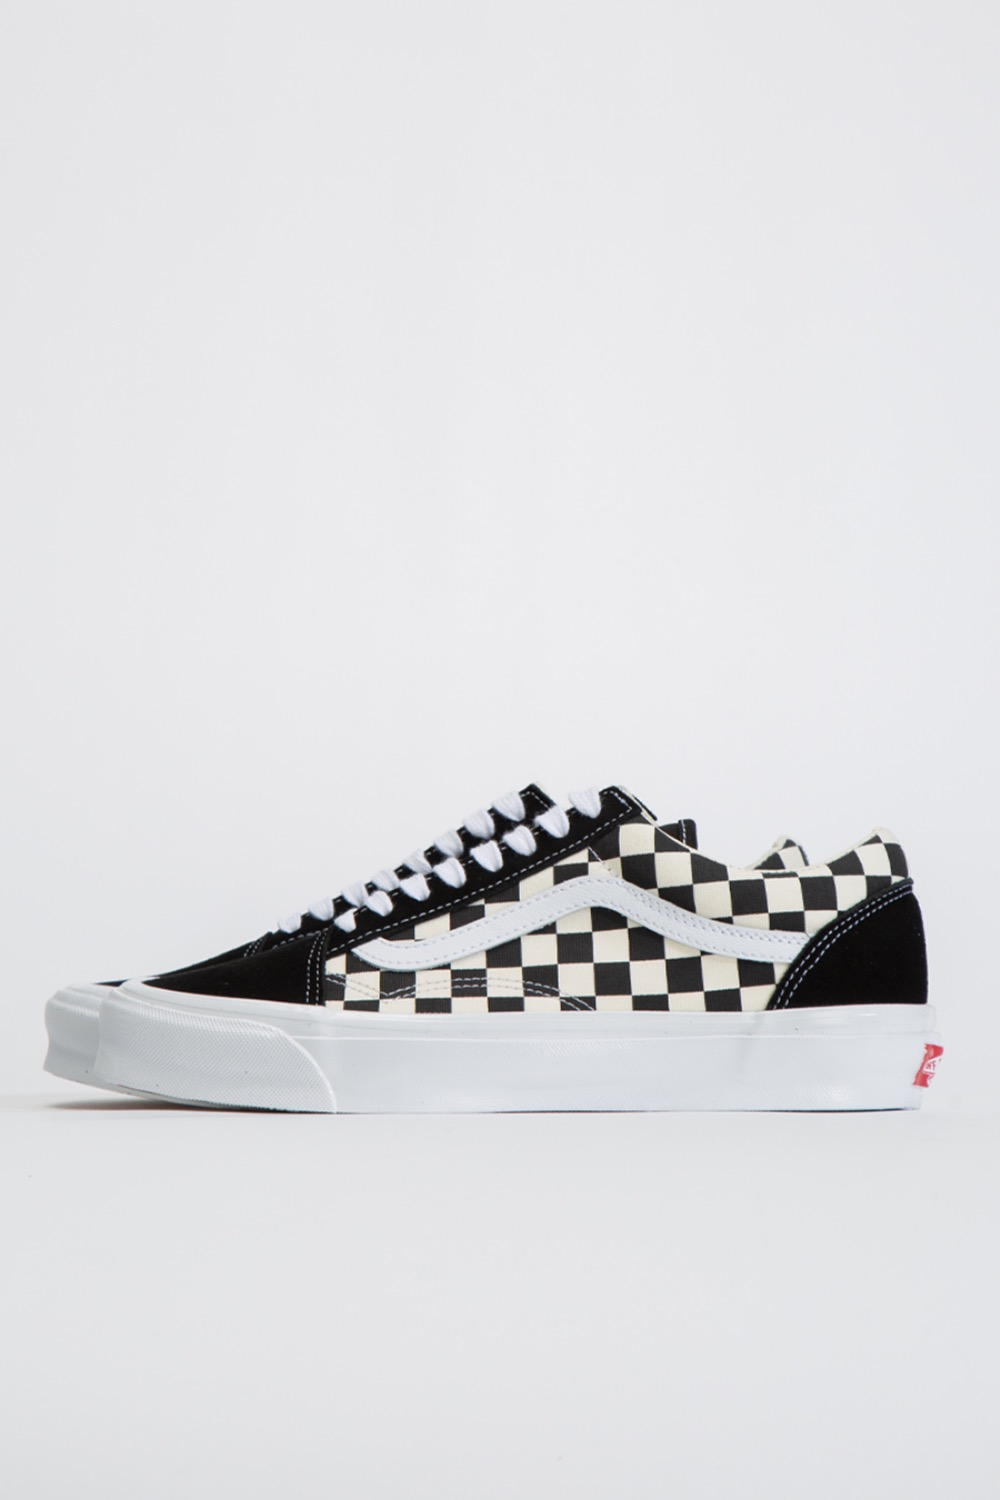 OG OLD SKOOL LX(SUEDE/CANVAS)BLACK/CHECKERBOARD